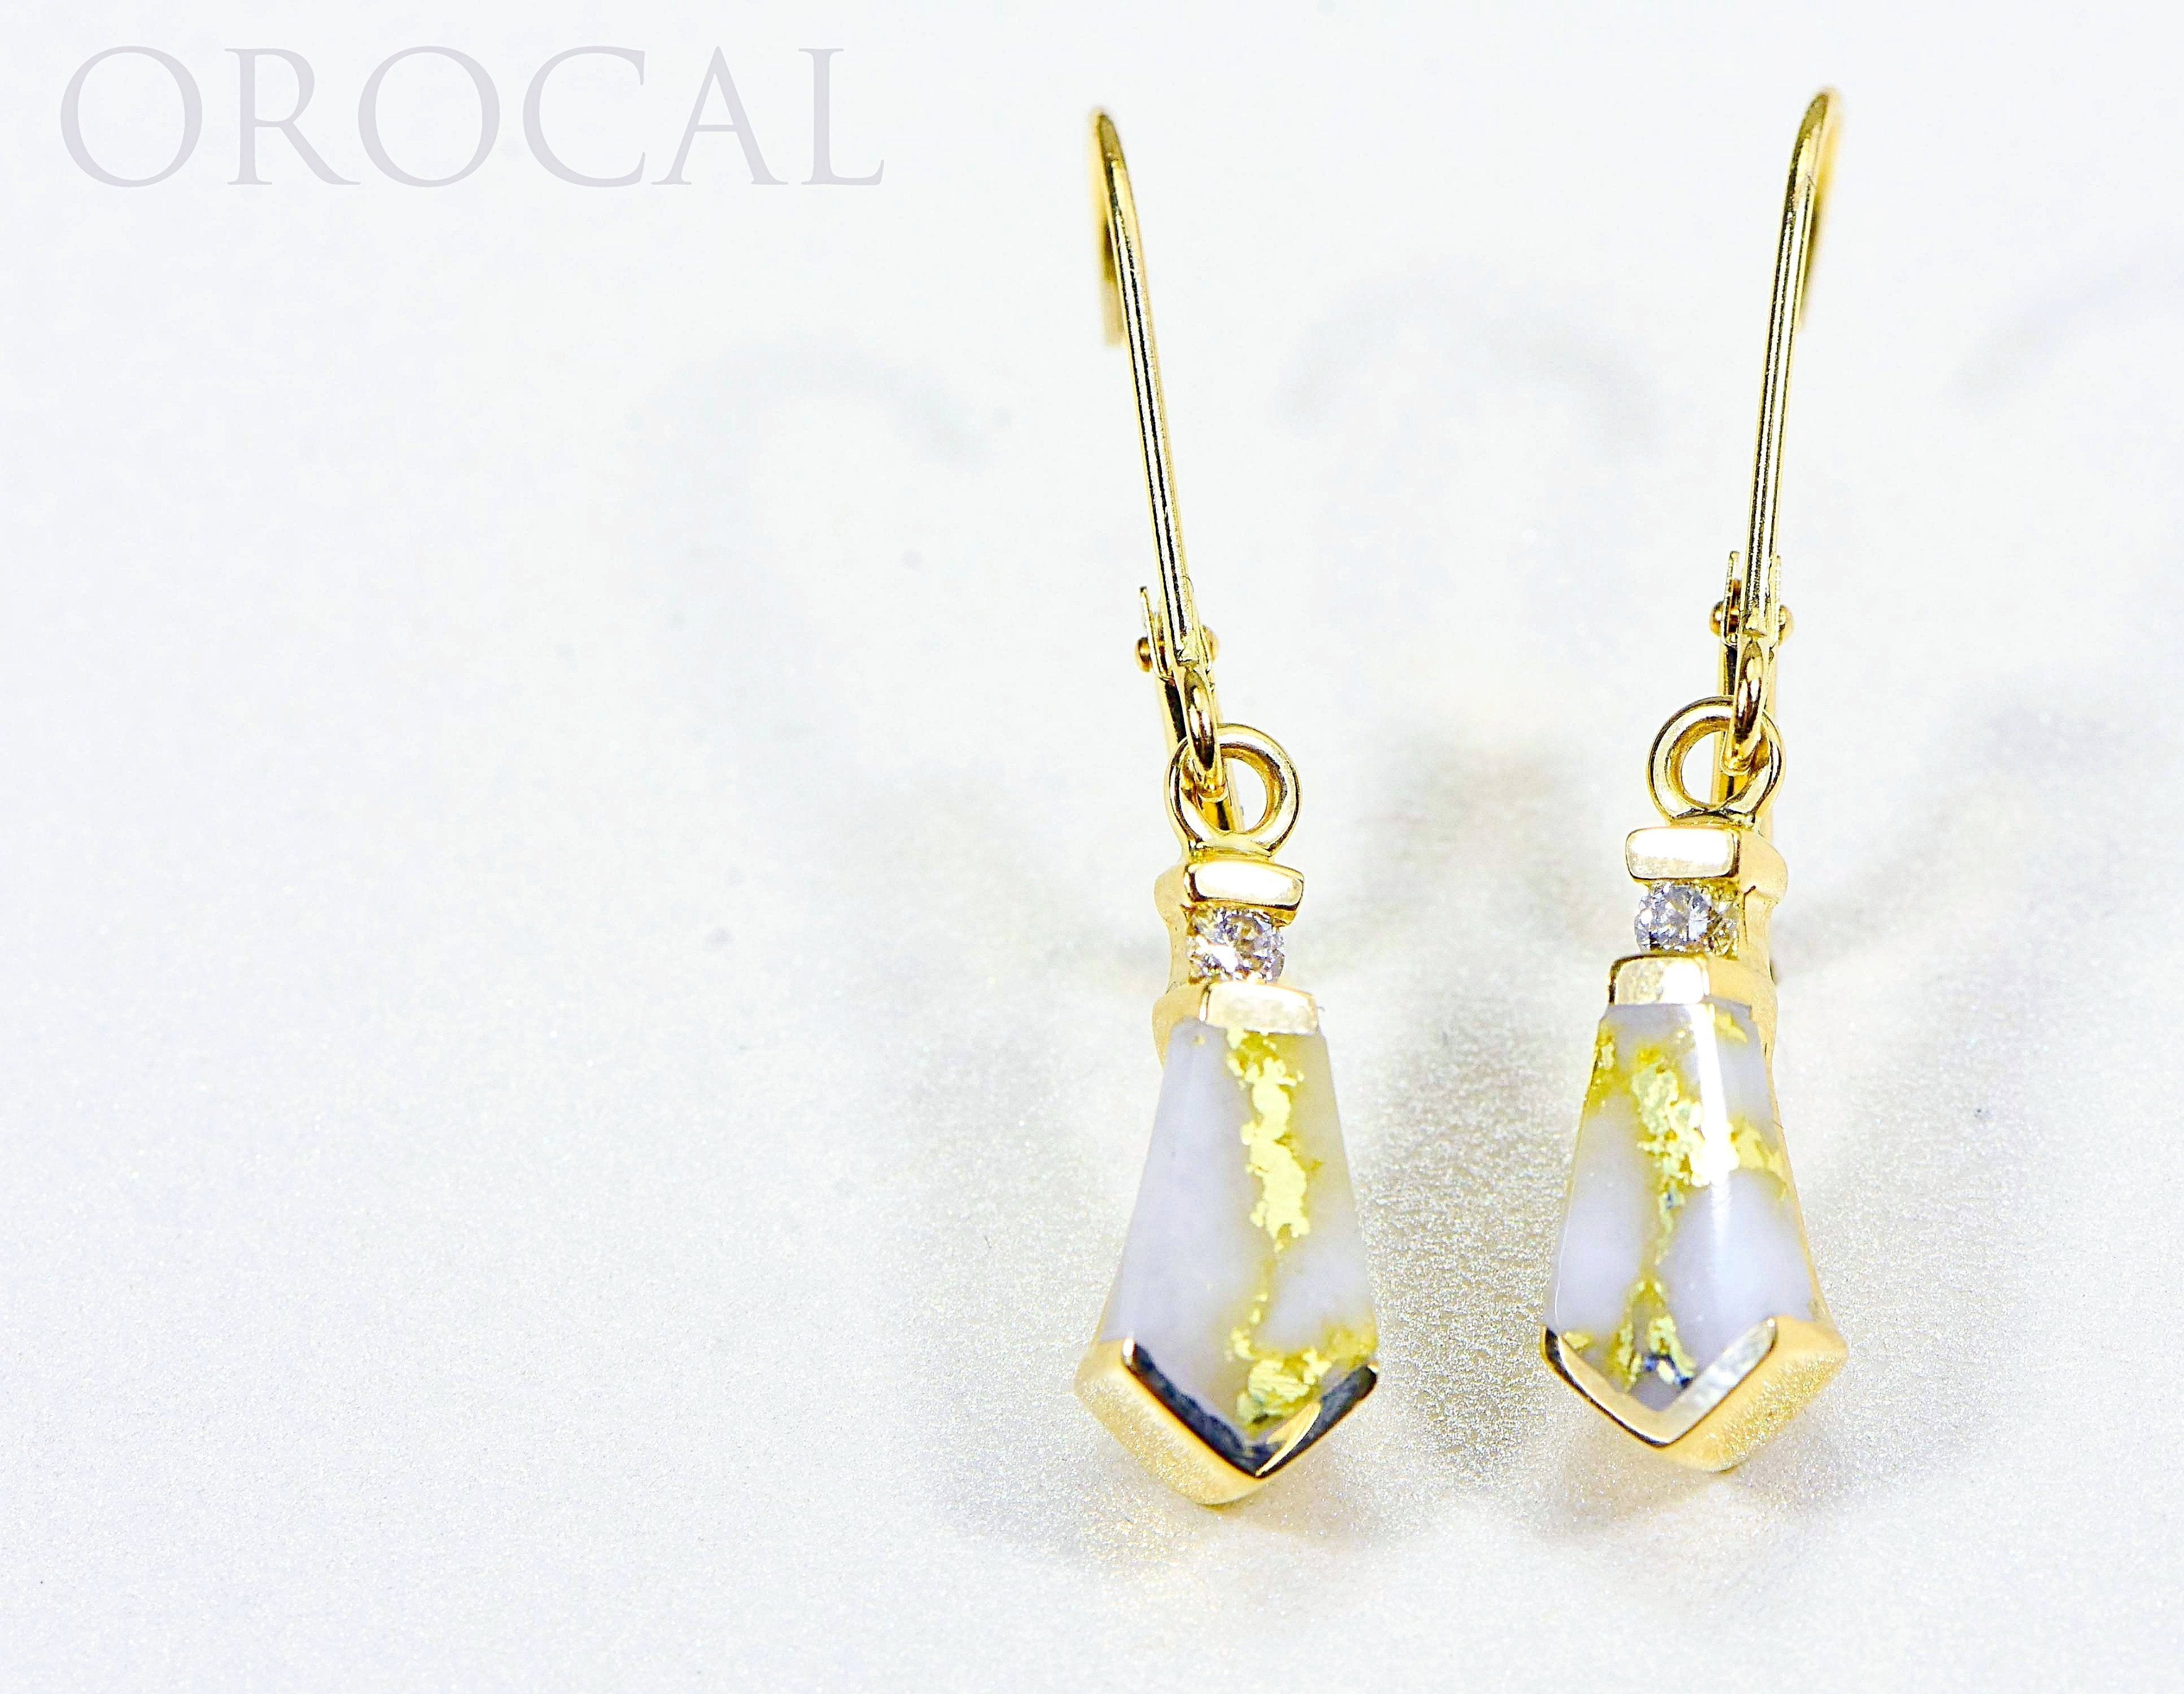 "Gold Quartz Earrings ""Orocal"" EN641D8Q/LB Genuine Hand Crafted Jewelry - 14K Gold Casting - Liquidbullion"